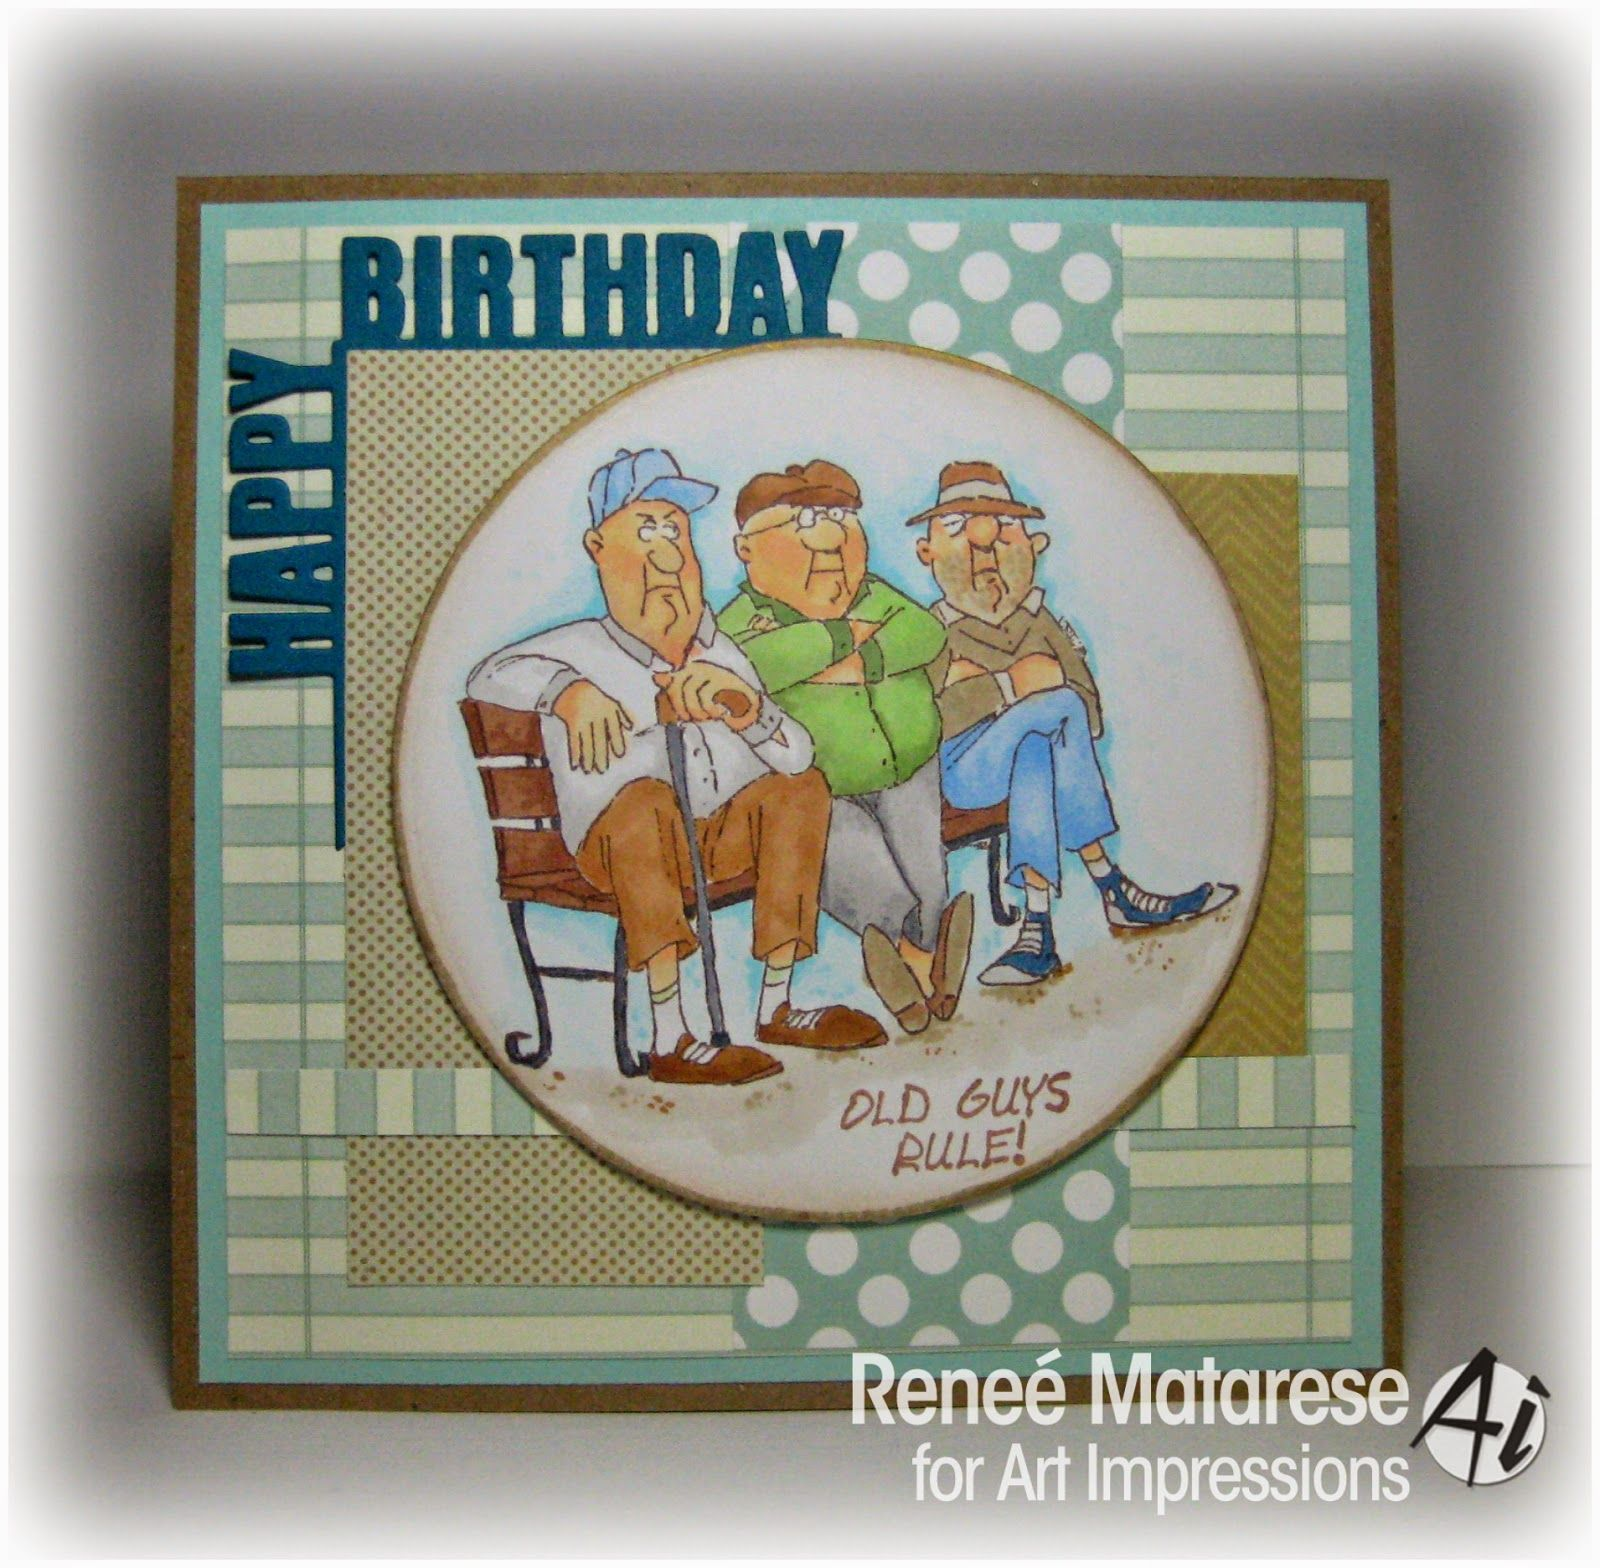 Art impressions ai people old guys handmade masculine birthday art impressions ai people old guys handmade masculine birthday card bookmarktalkfo Images